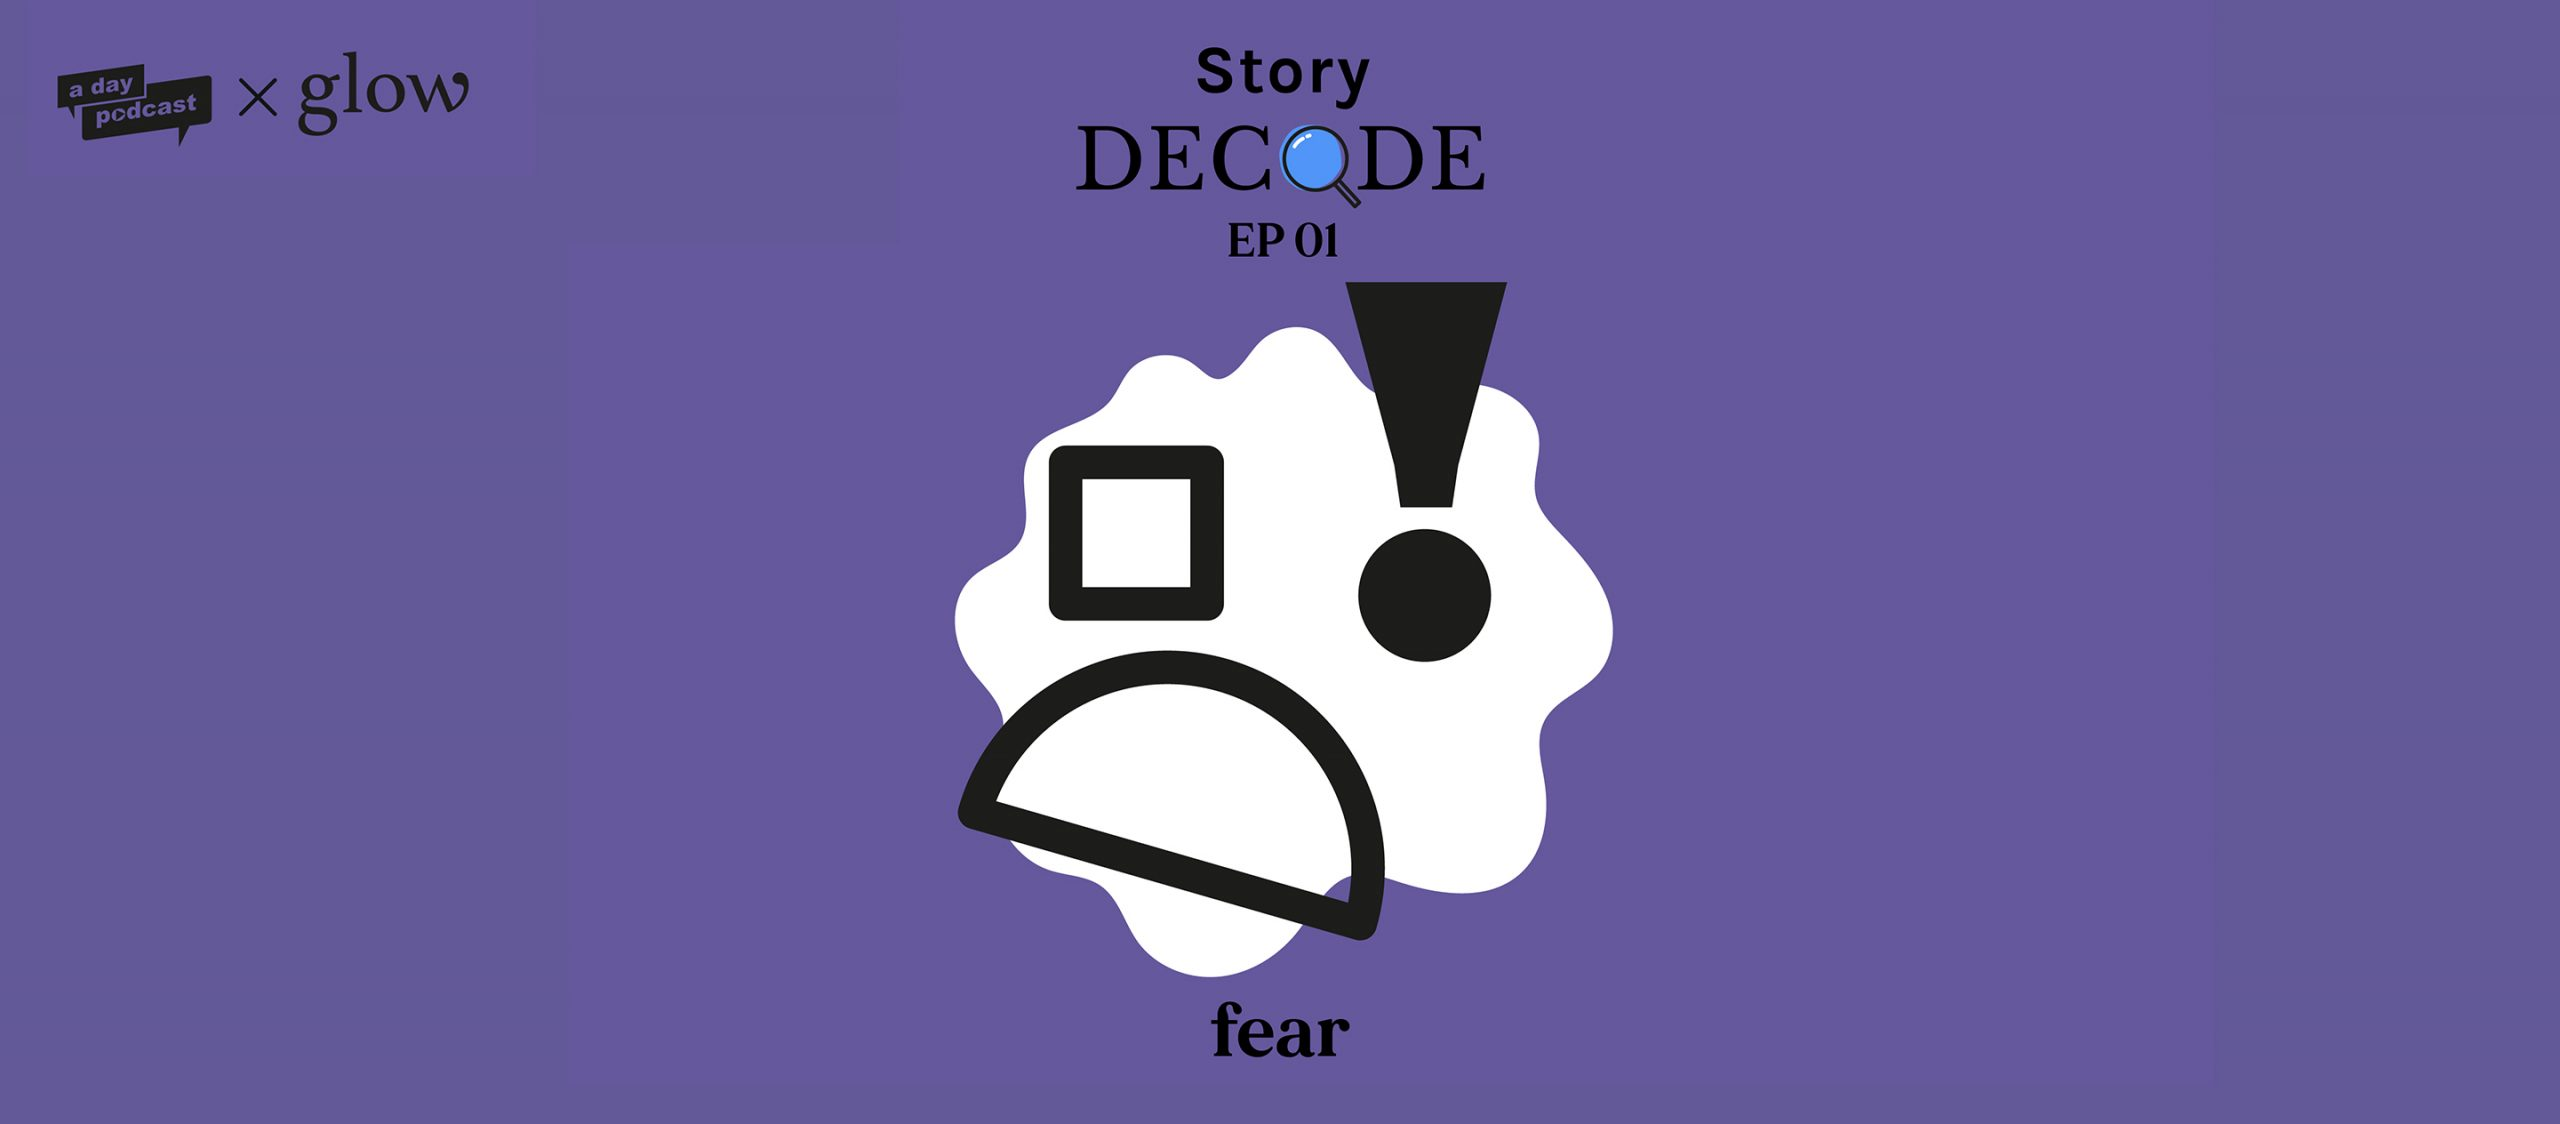 StoryDecode EP.1 : Fear (ความกลัว) | a day Podcast x Glow Story